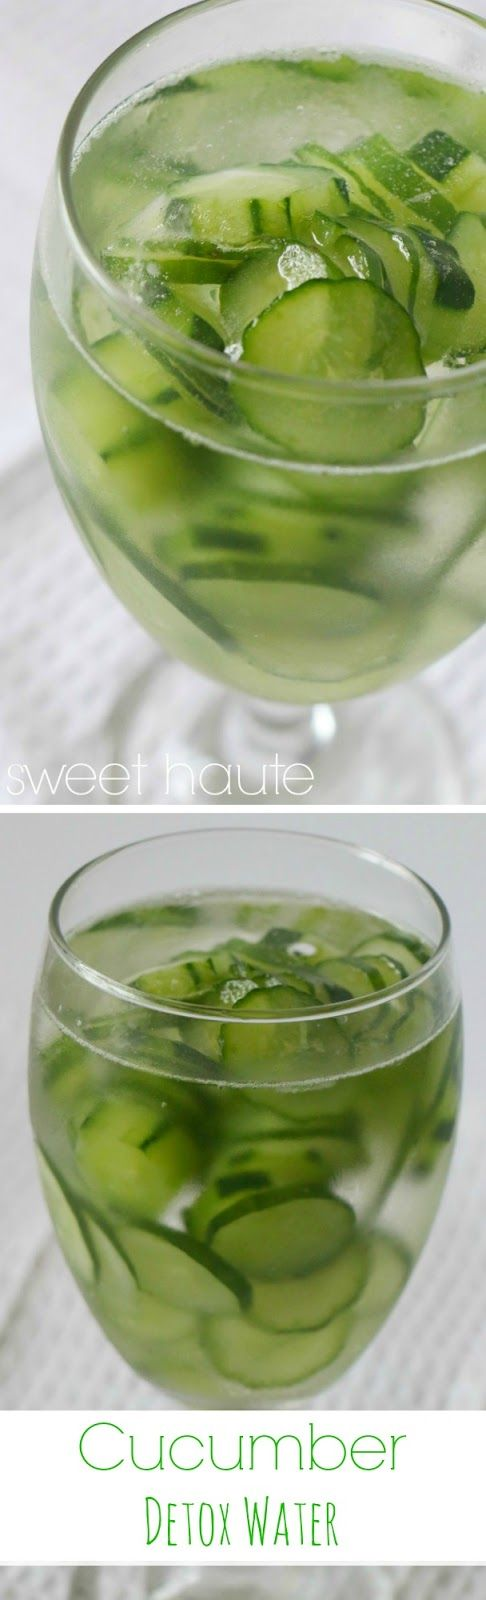 EASY Cucumber Detox Water weight management loss using Essential Oils- SWEET HAUTE made by a real person!!! Lol